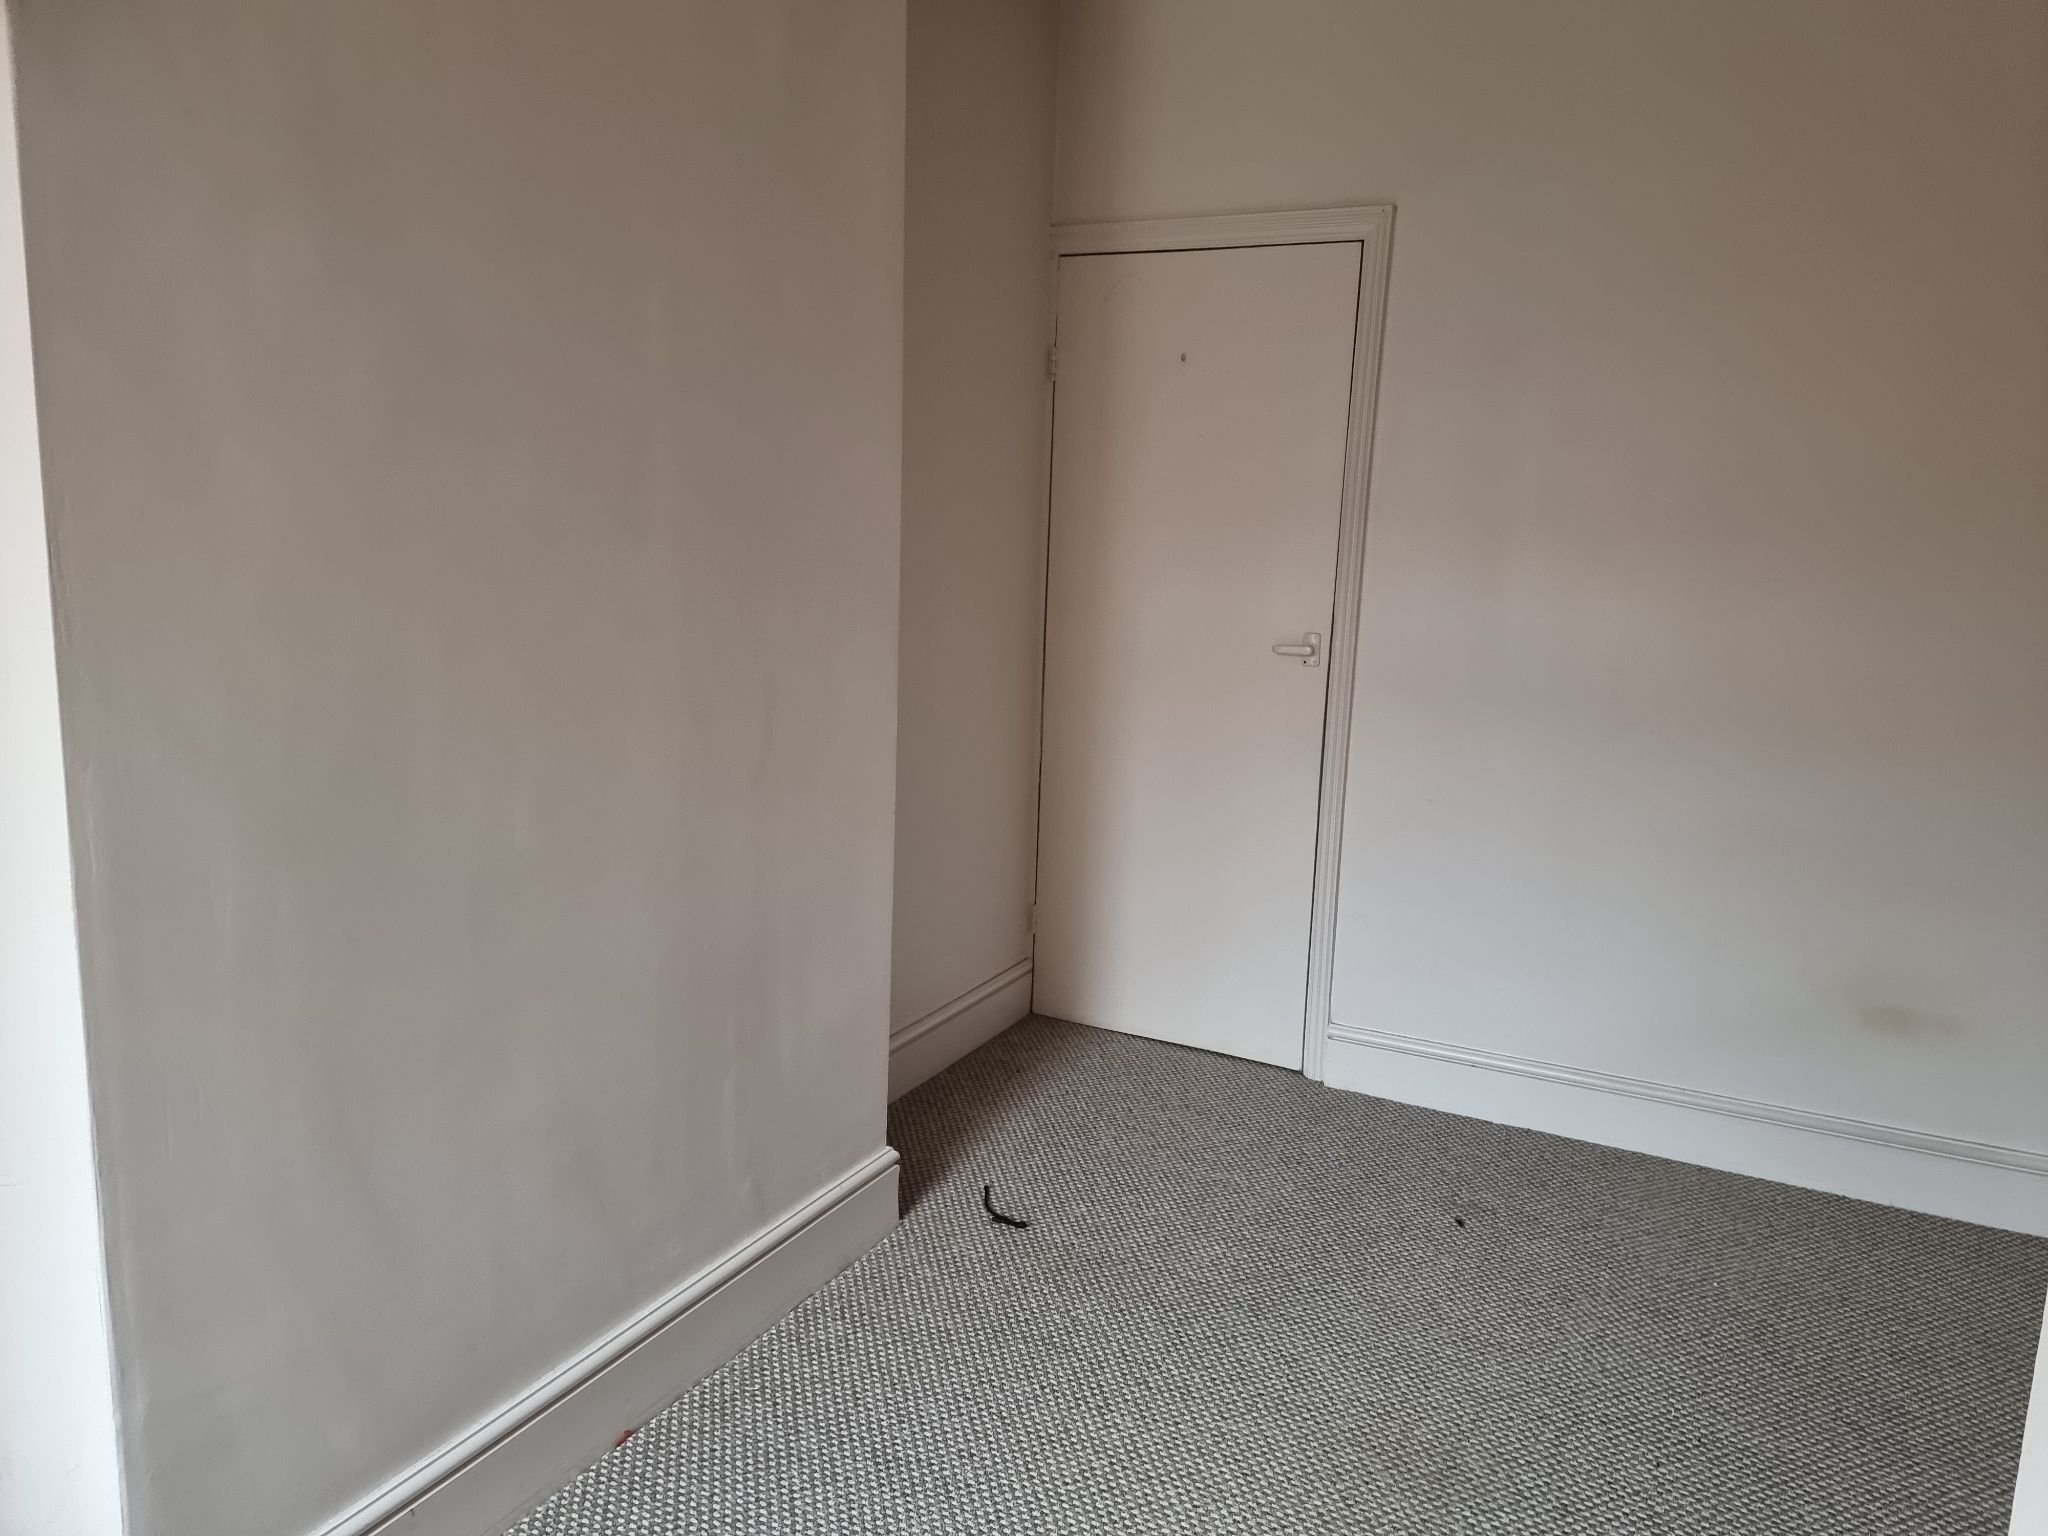 3 bedroom mid terraced house For Sale in Leicester - Photograph 8.